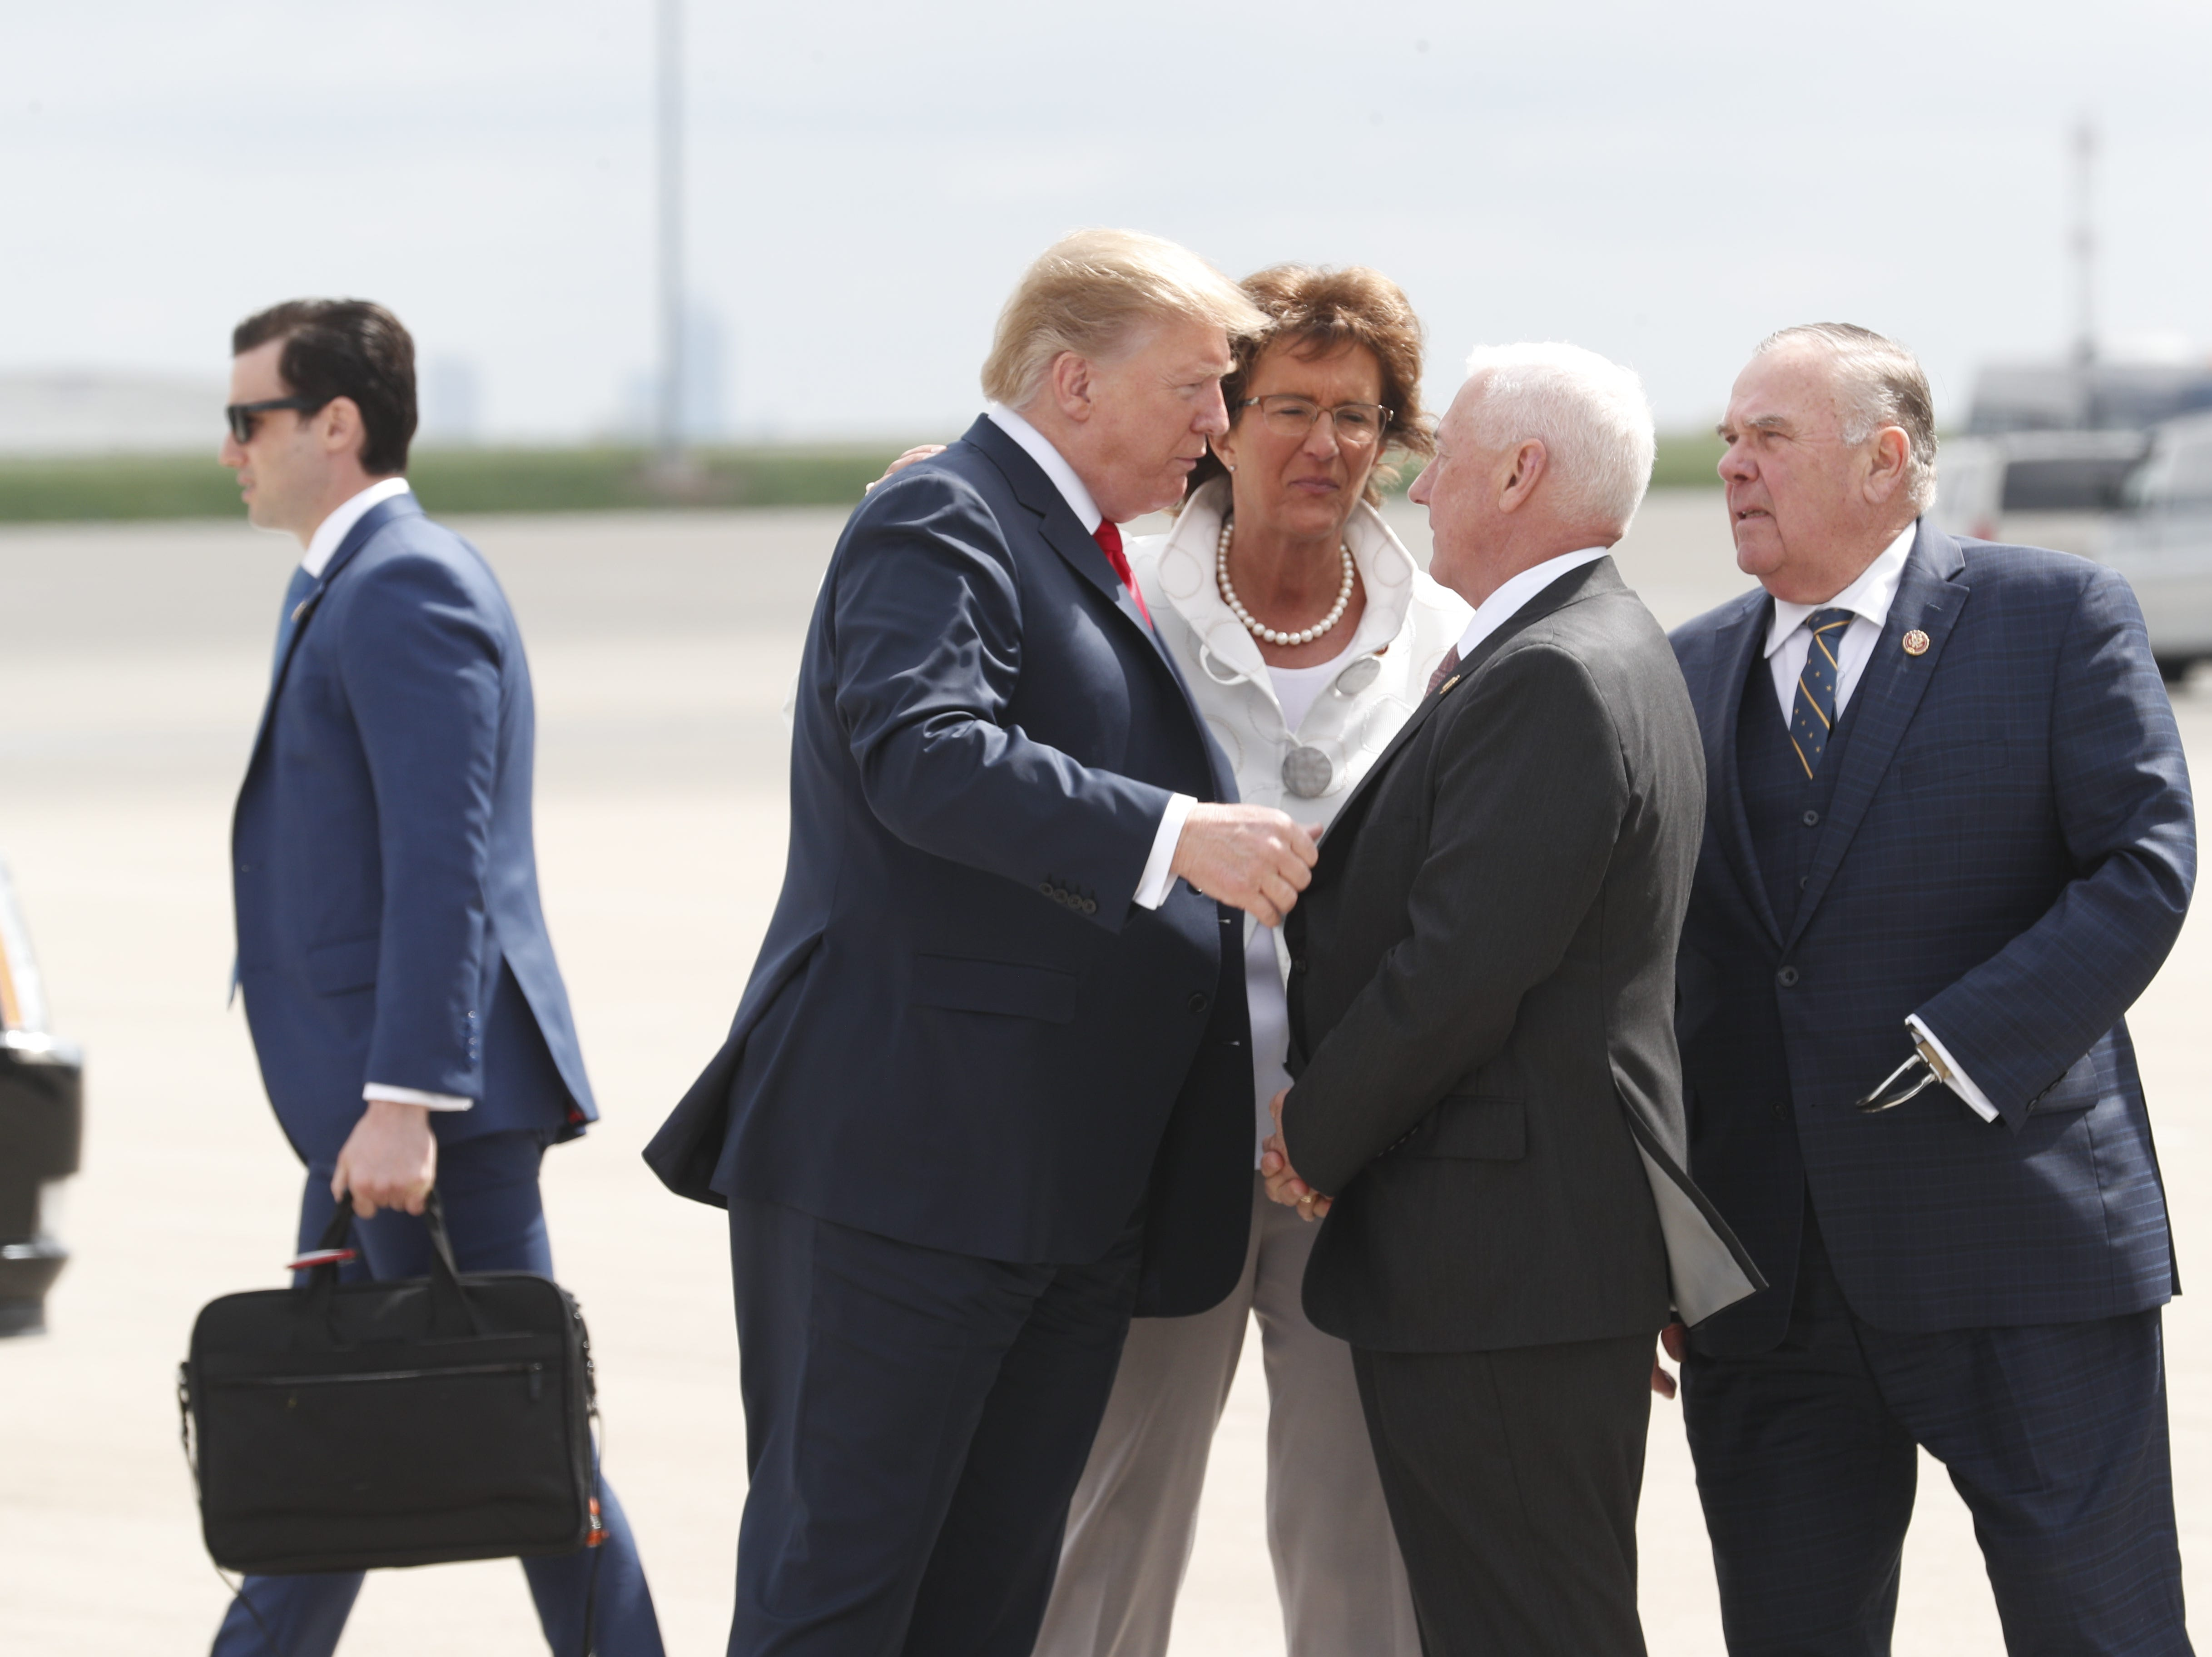 President Donald Trump talks with Congressman Greg Pence, brother of Vice President Mike Pence at the Indianapolis International Airport on Friday, April 26, 2019.  Congresswoman  Jackie Walorski and Congressman Jim Baird look on. Trump will speak at the NRA Institute for Legislative Action (NRA-ILA) Leadership Forum at Lucas Oil Stadium.